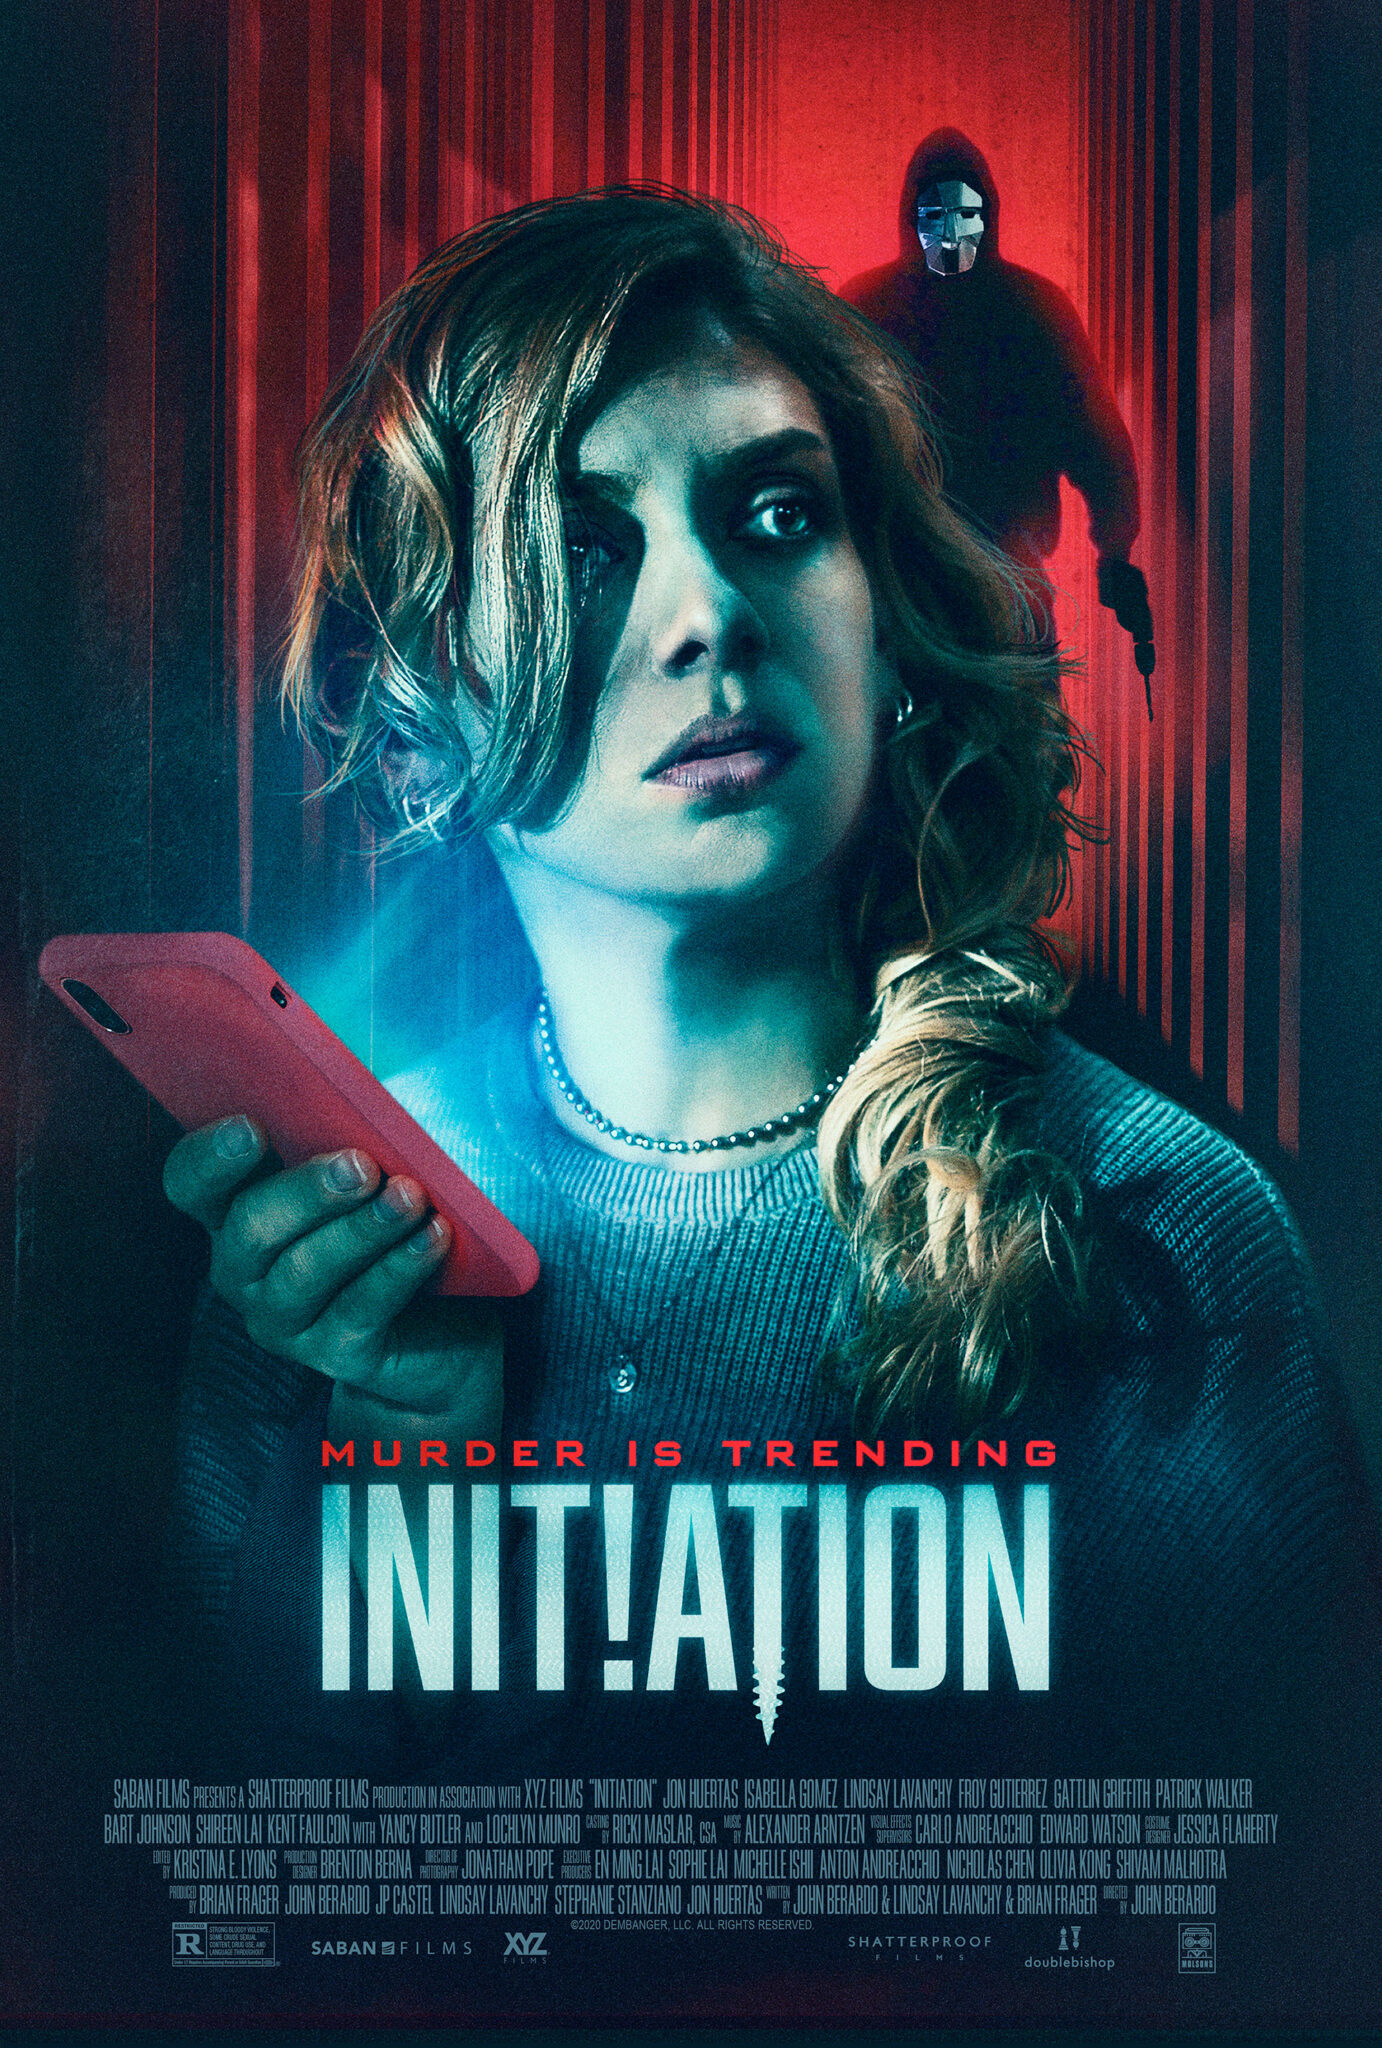 INITIATION Exclusive Interview: John Berardo Talks How Being a Fan of Slashers Influenced His New Film